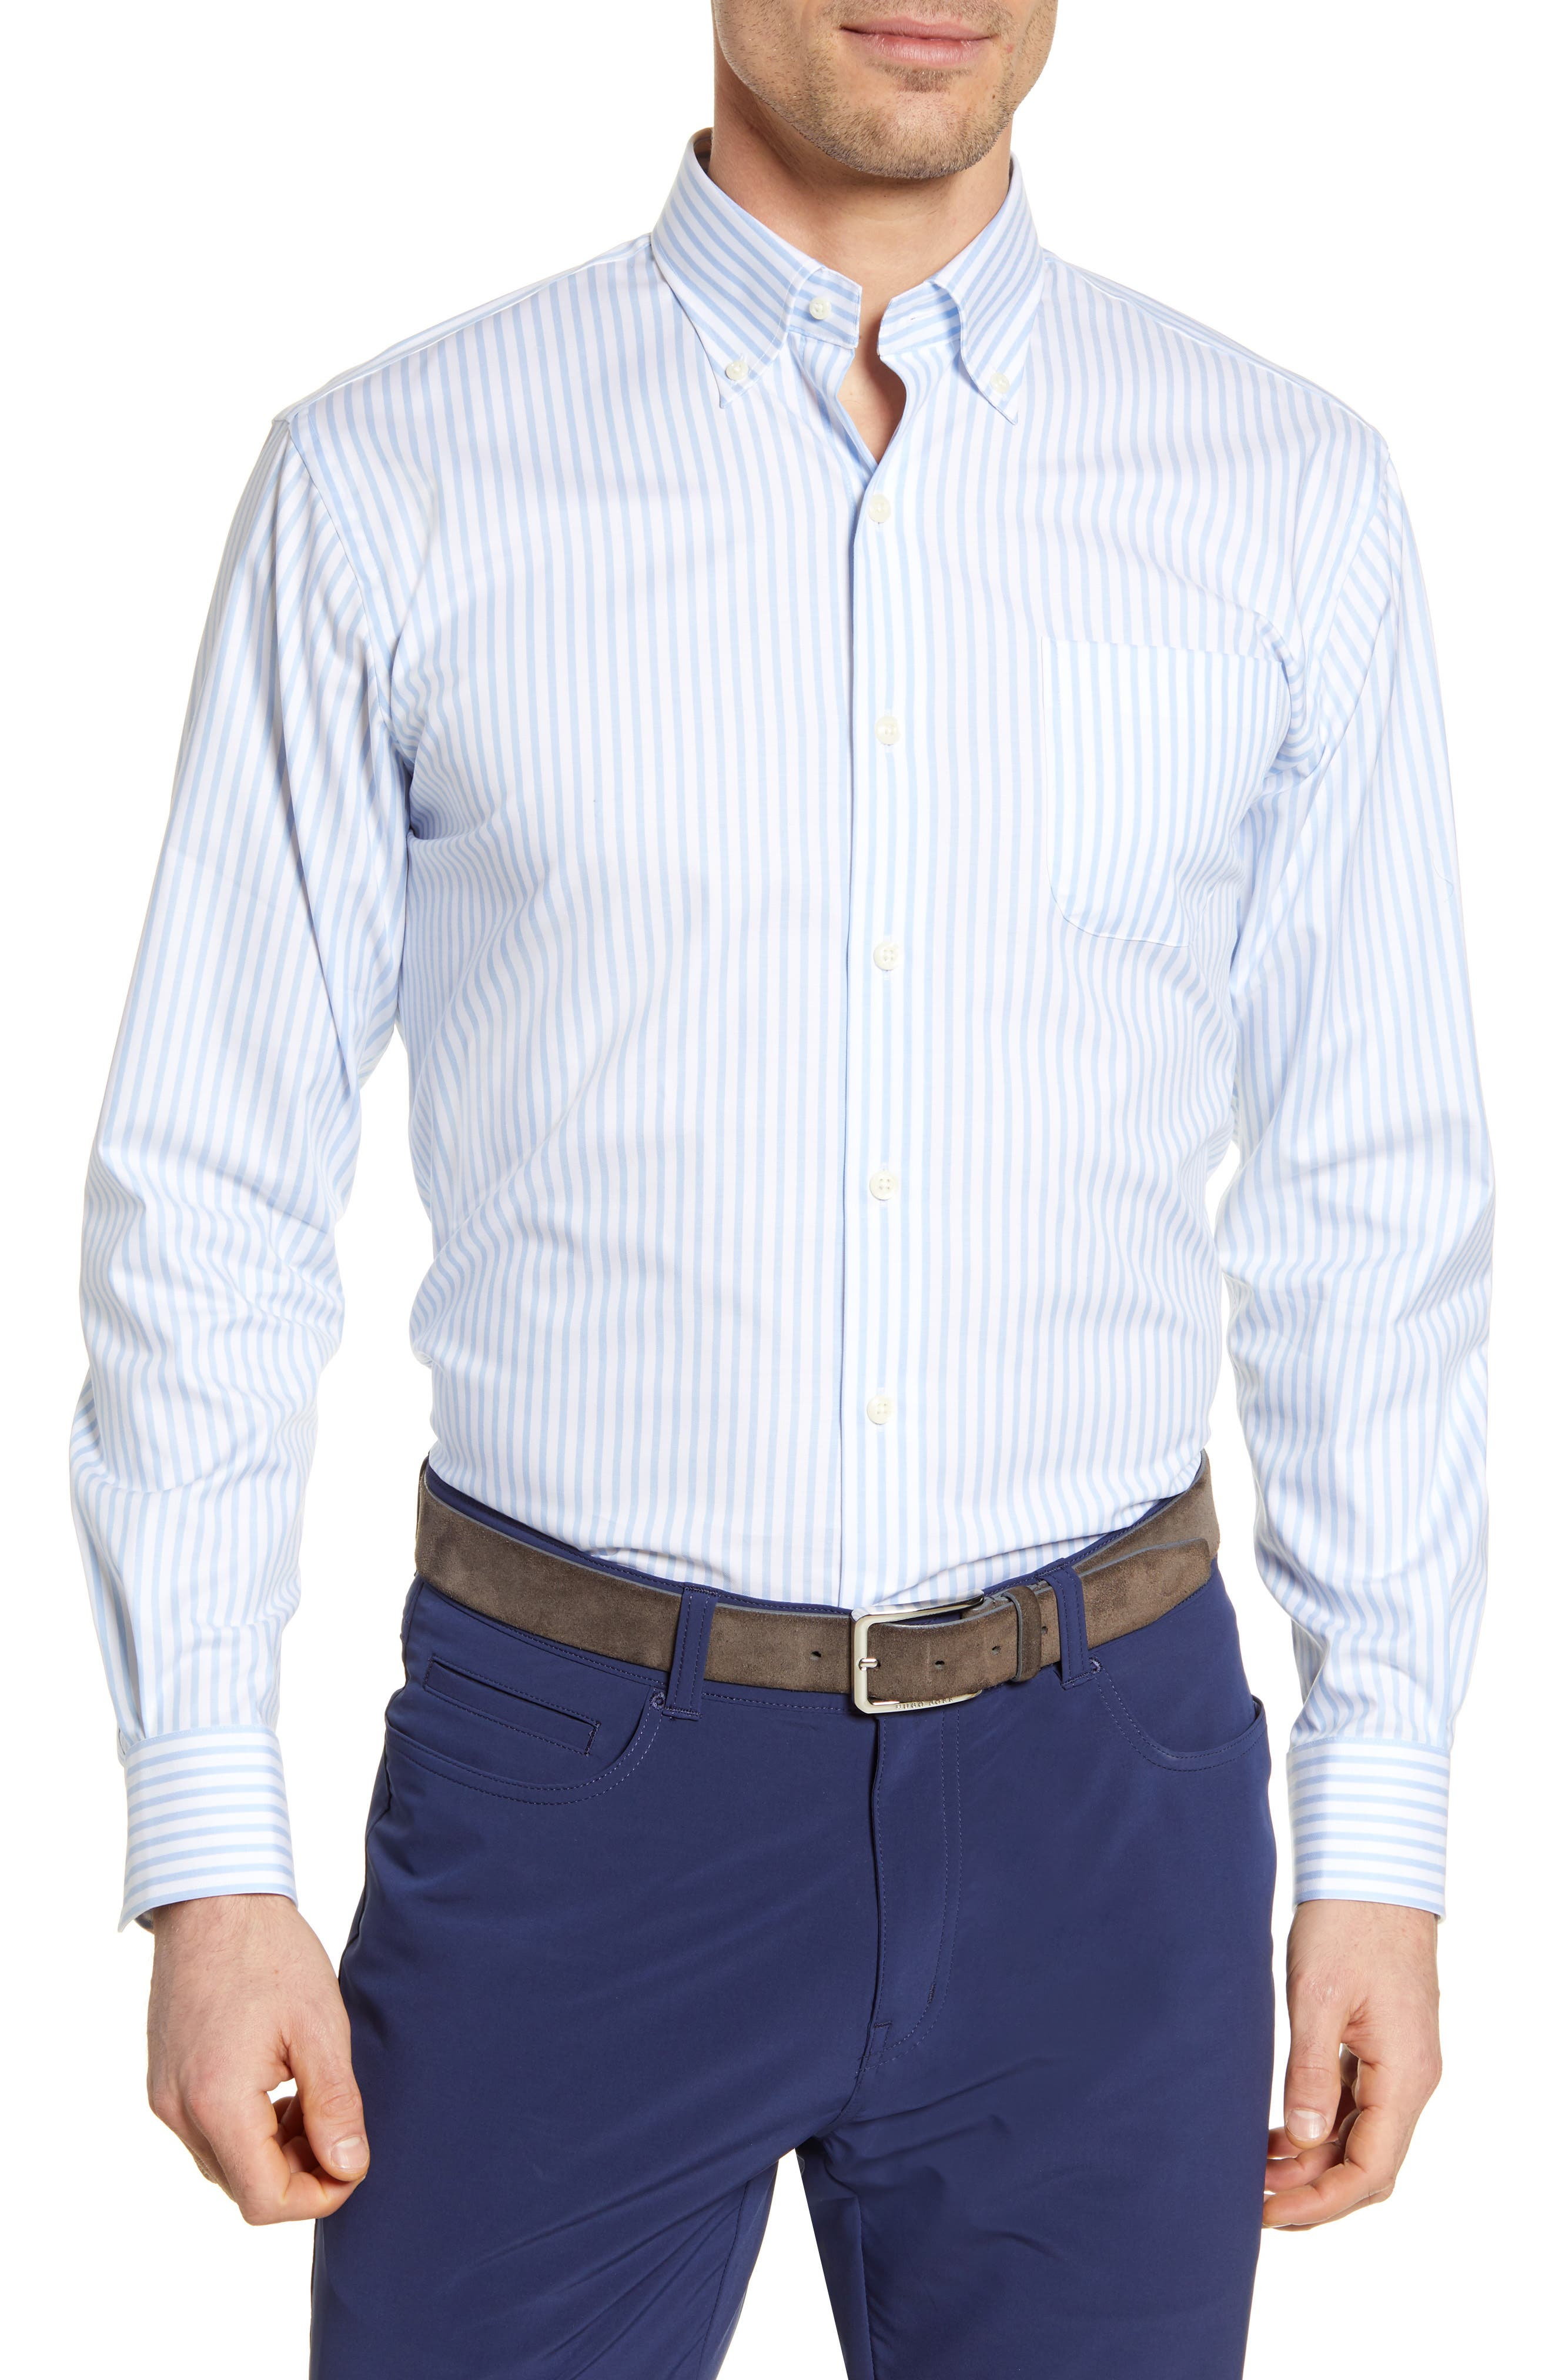 Fresh blue-and-white stripes give a clean, crisp look to a button-down with added stretch for move-with-you comfort. Style Name: Peter Millar Caspian Stripe Button-Down Shirt. Style Number: 6001252. Available in stores.